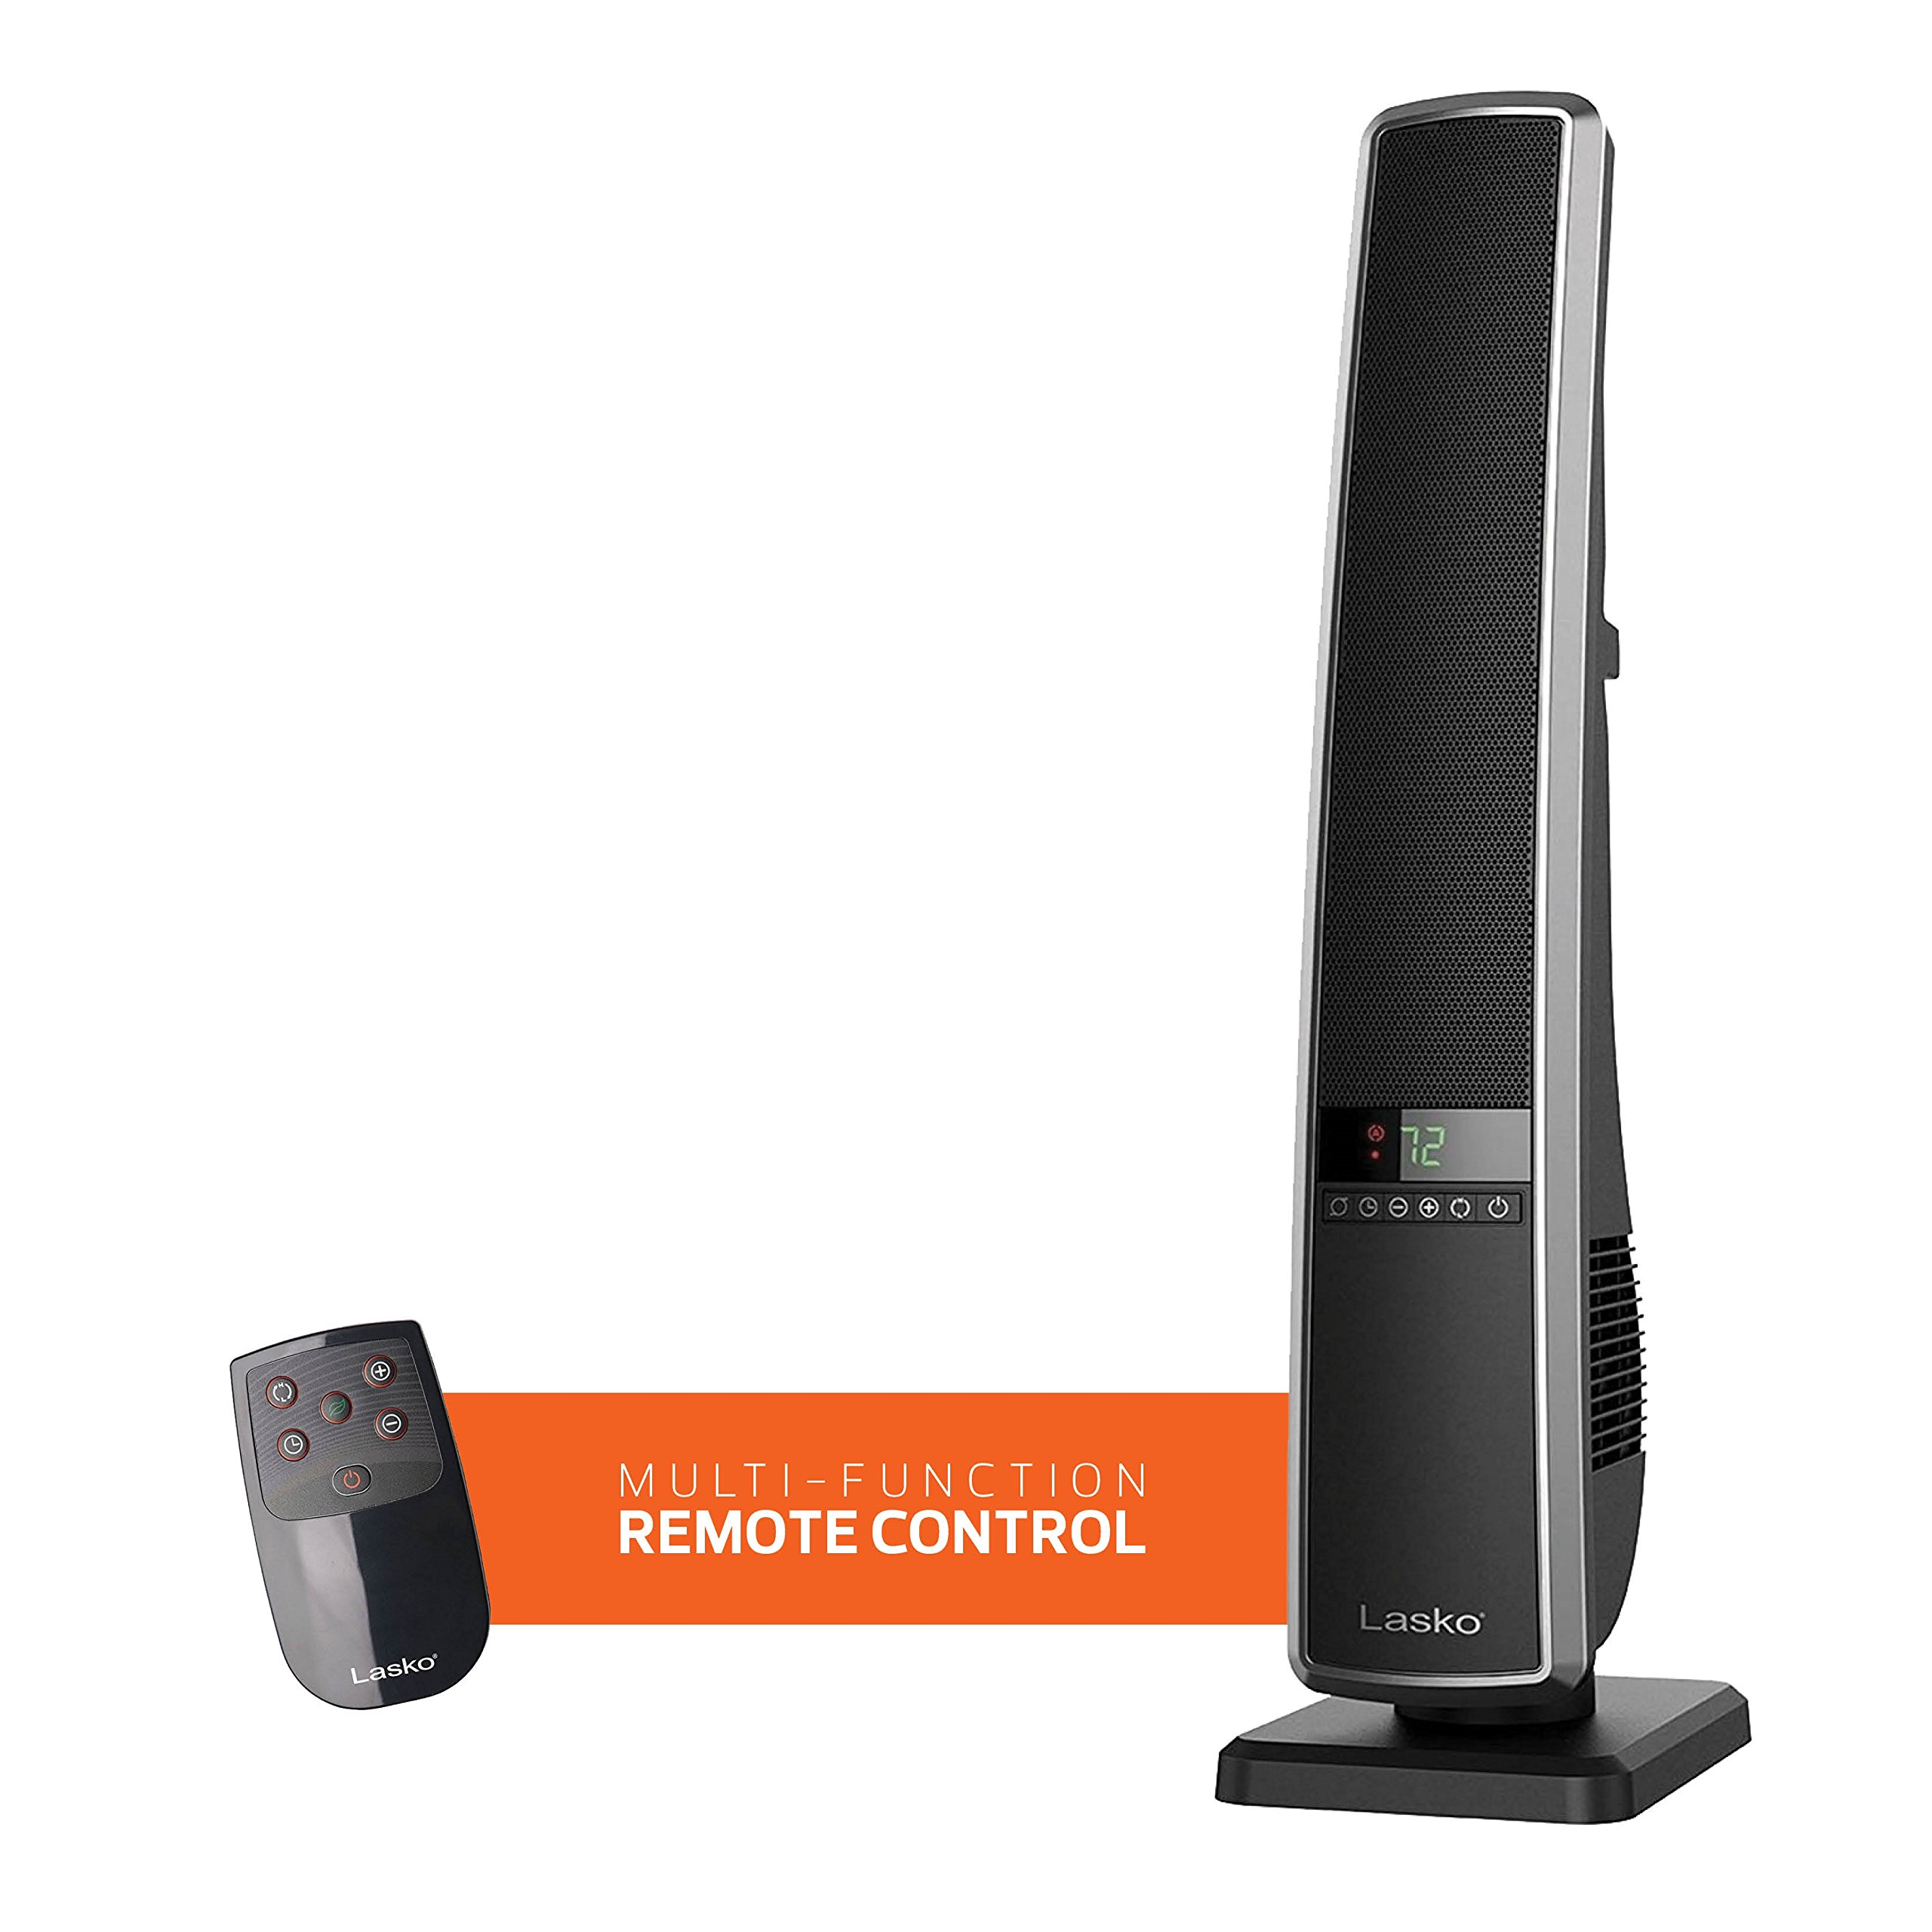 Lasko 32-Inch Digital Ceramic Tower Heater with Multi-Function Remote Control and Widespread Oscillation by Lasko